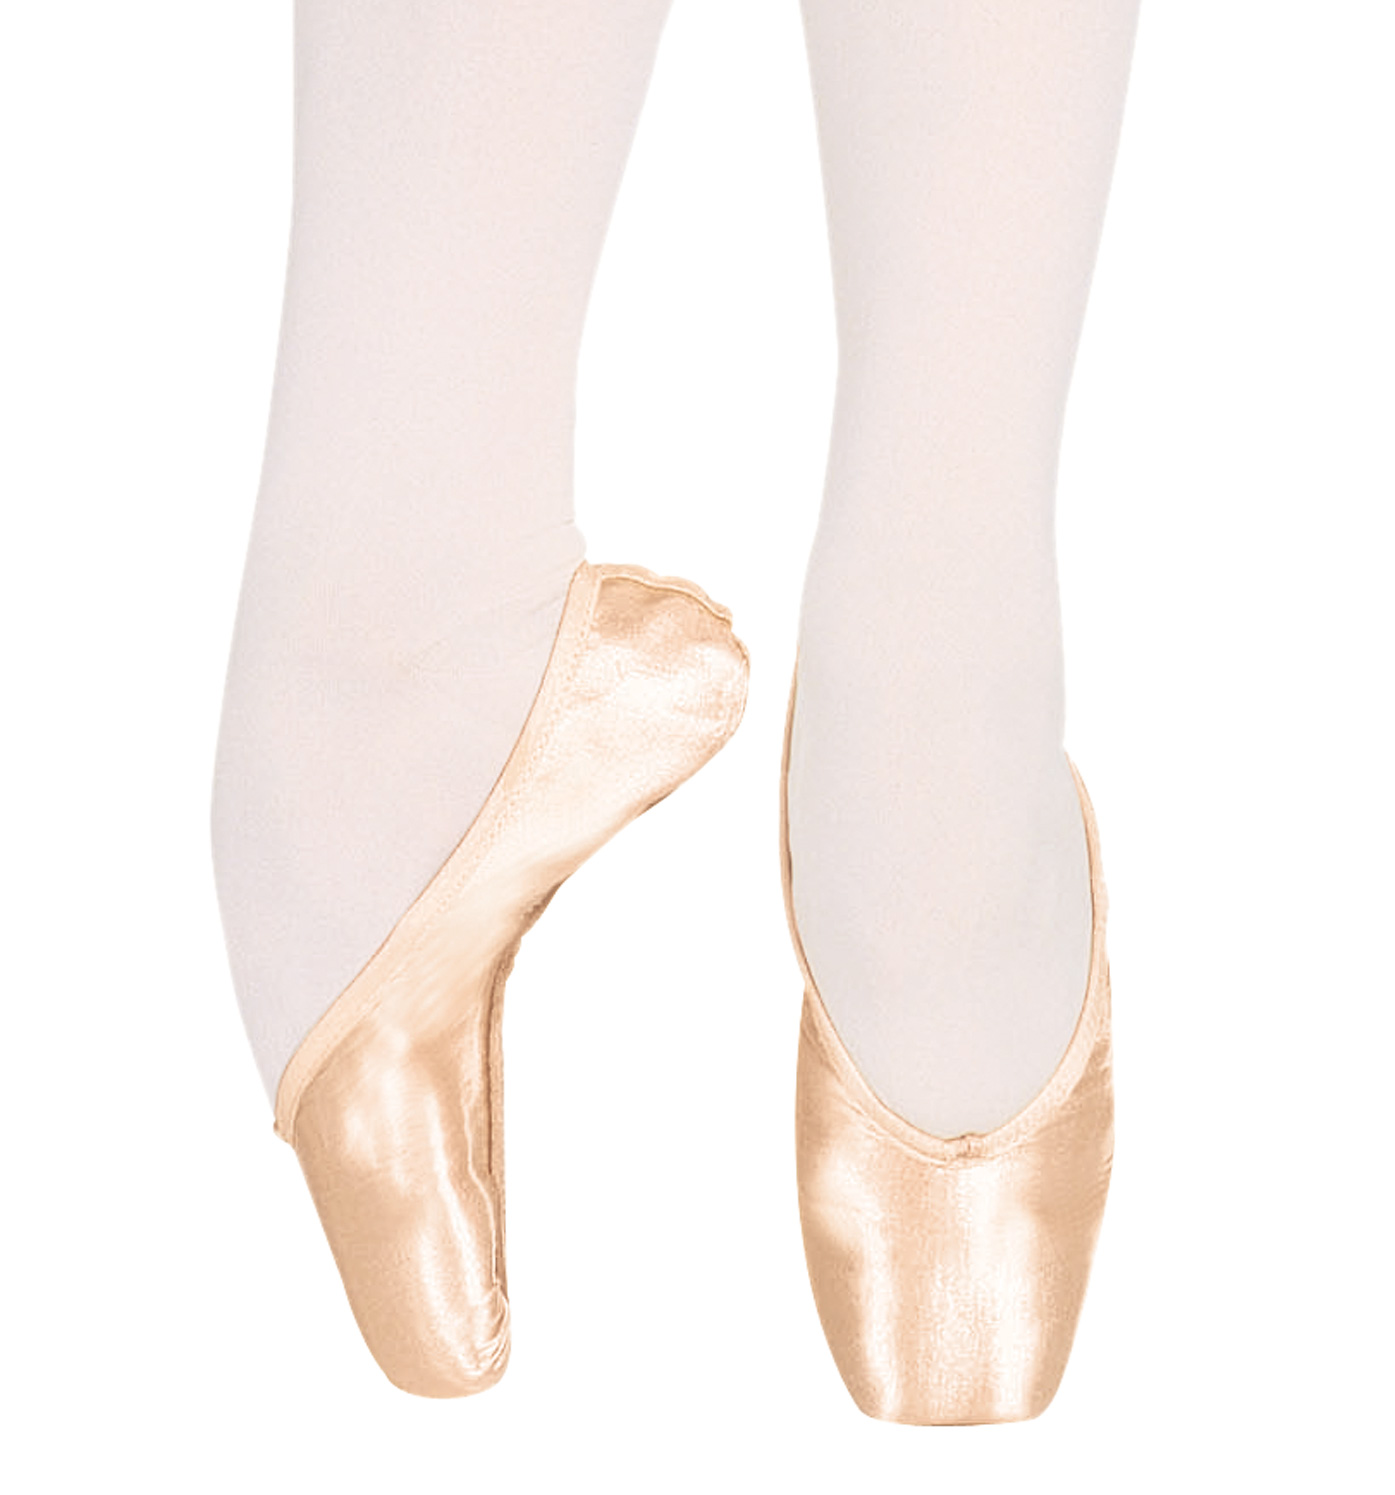 Chacott Pointe Shoes Review